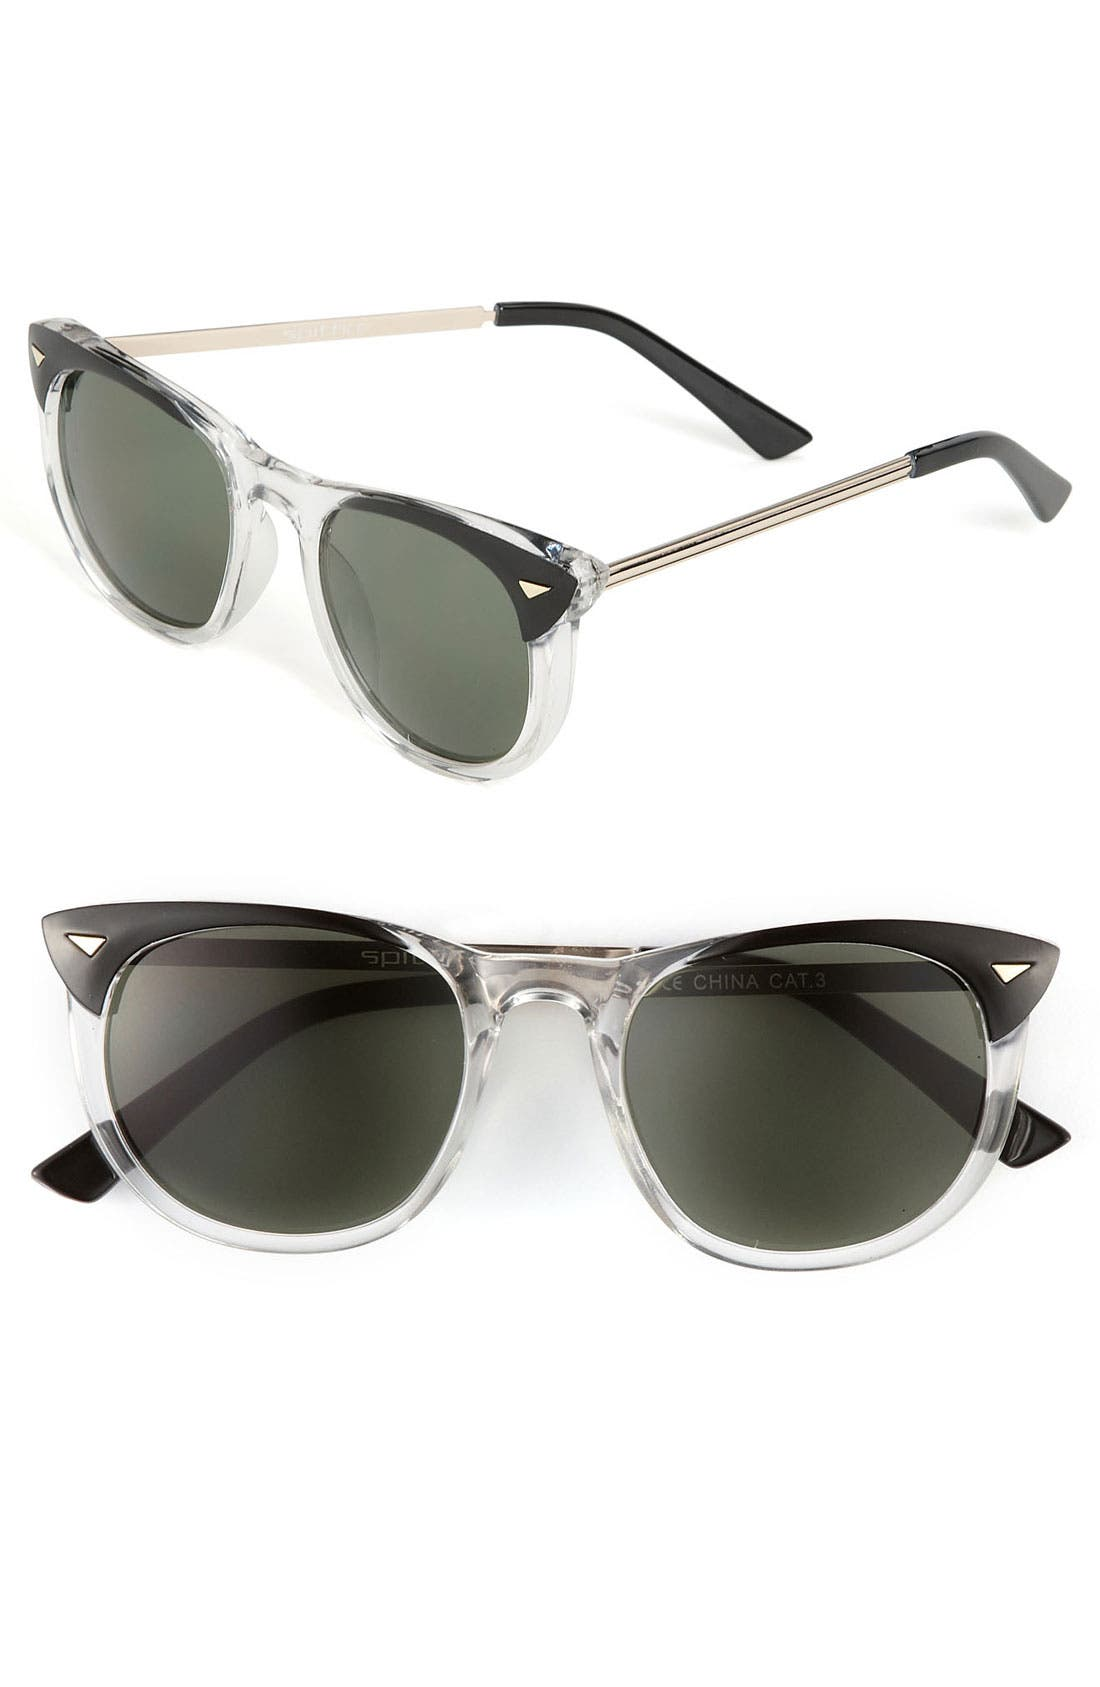 Main Image - Spitfire Retro Sunglasses